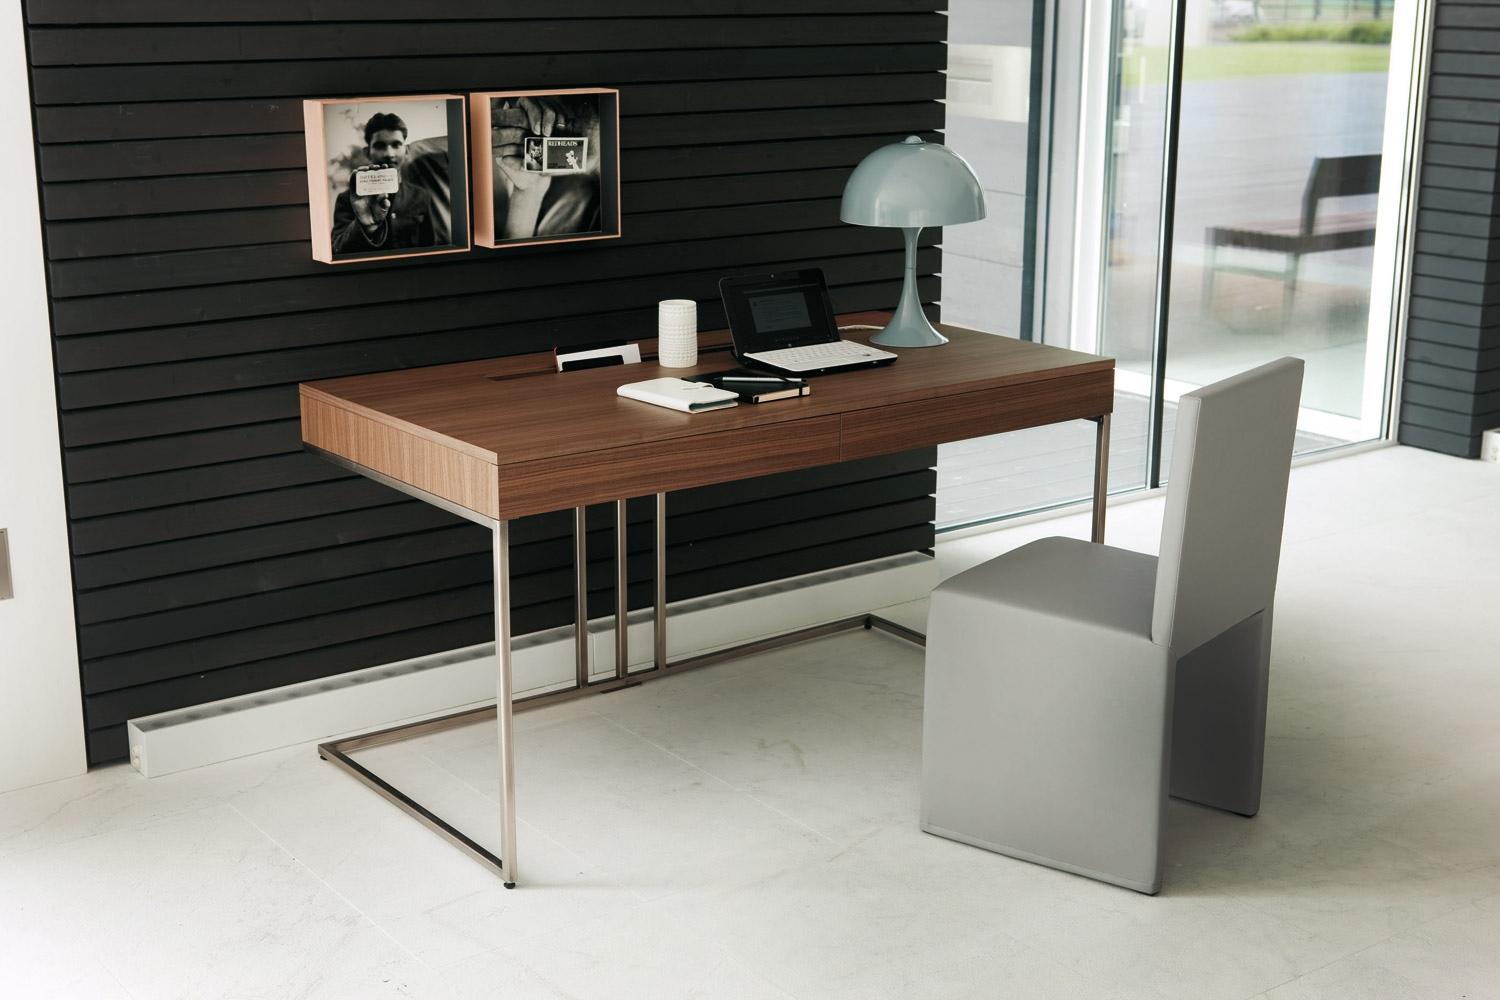 30 inspirational home office desks - Home Desk Design